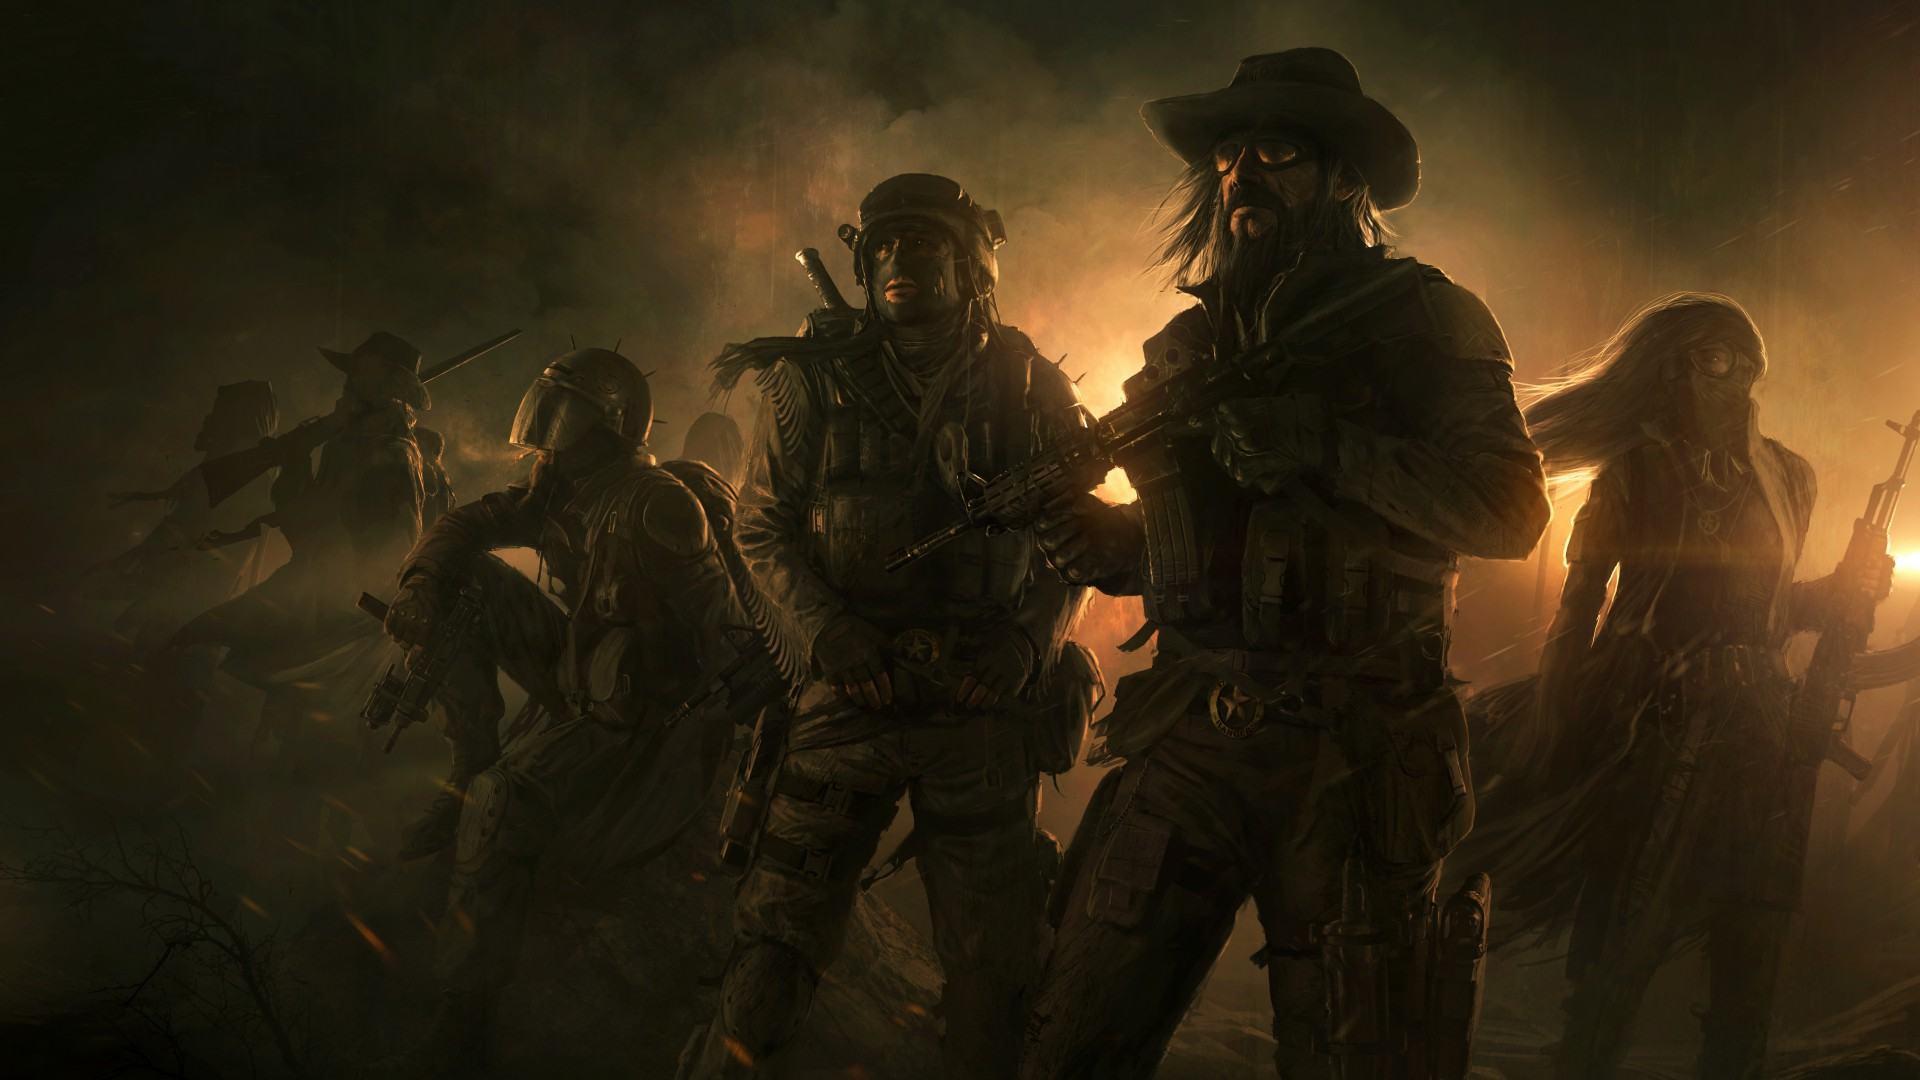 Wasteland 2, Best games 2015, game, PC, PS4, Xbox one (horizontal)